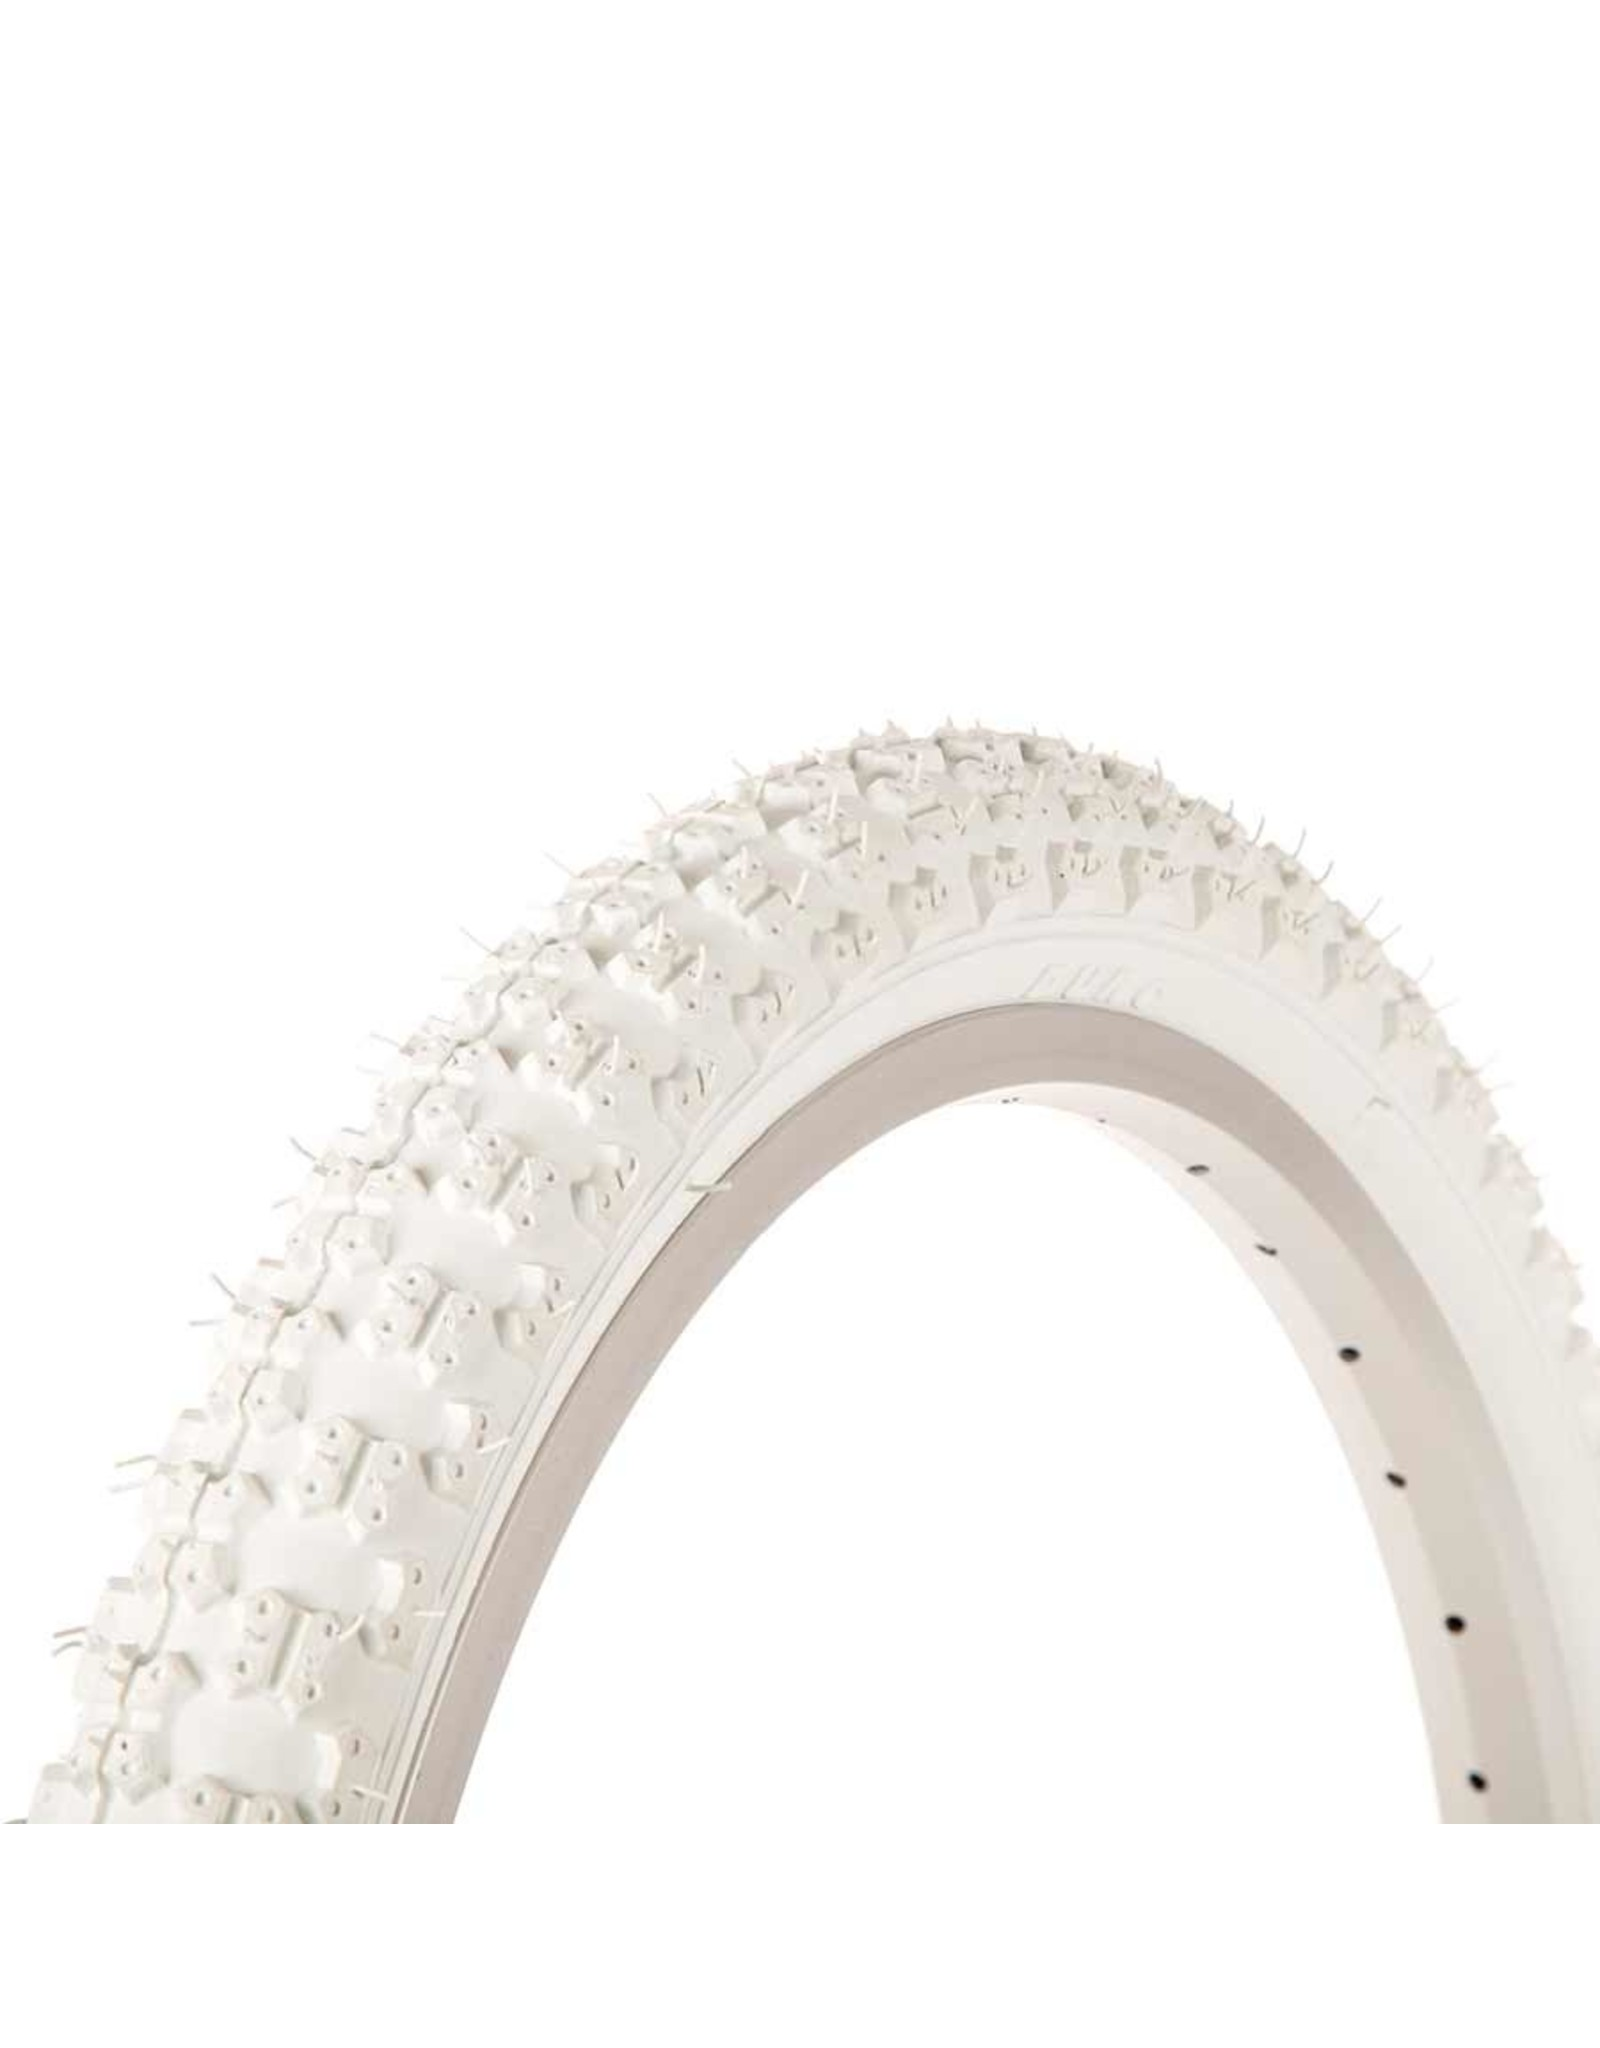 EVO, Splash, Tire, 16''x1.75, Wire, Clincher, White